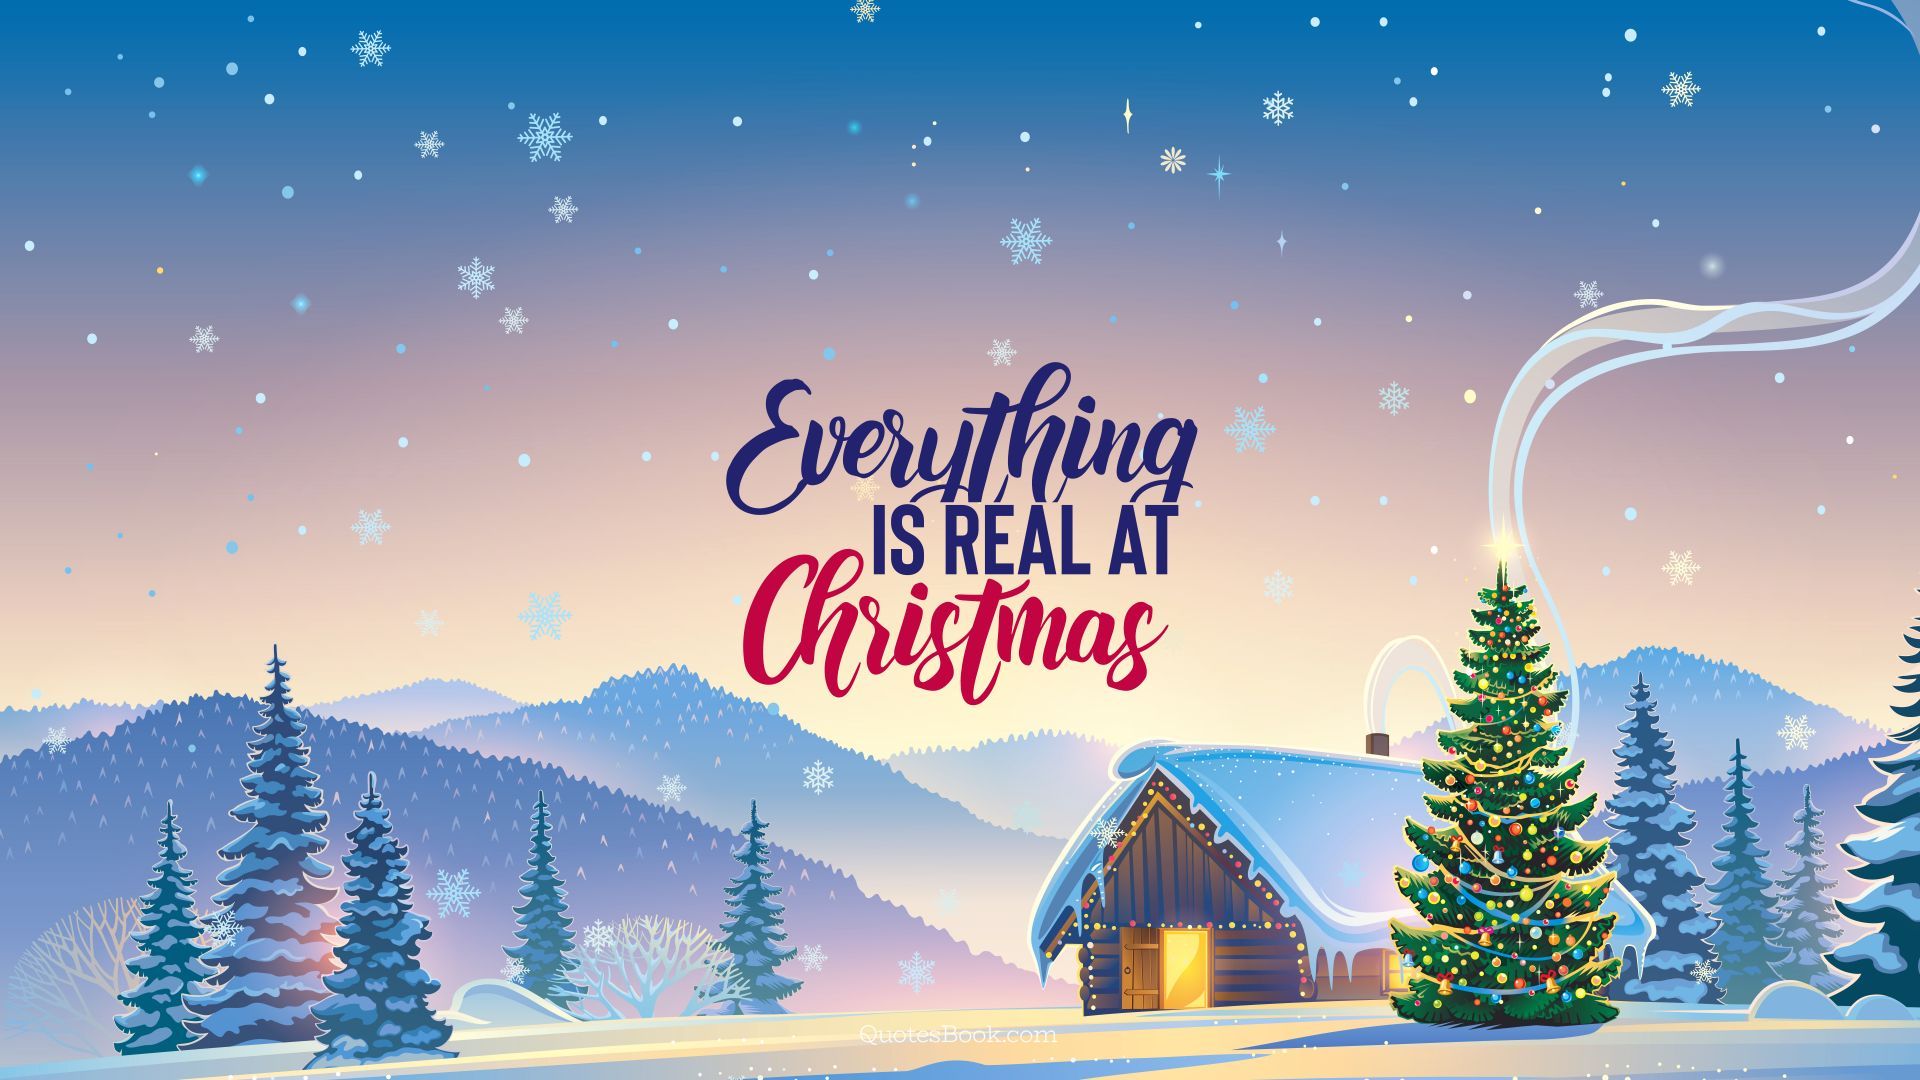 Everything is real at Christmas. - Quote by QuotesBook